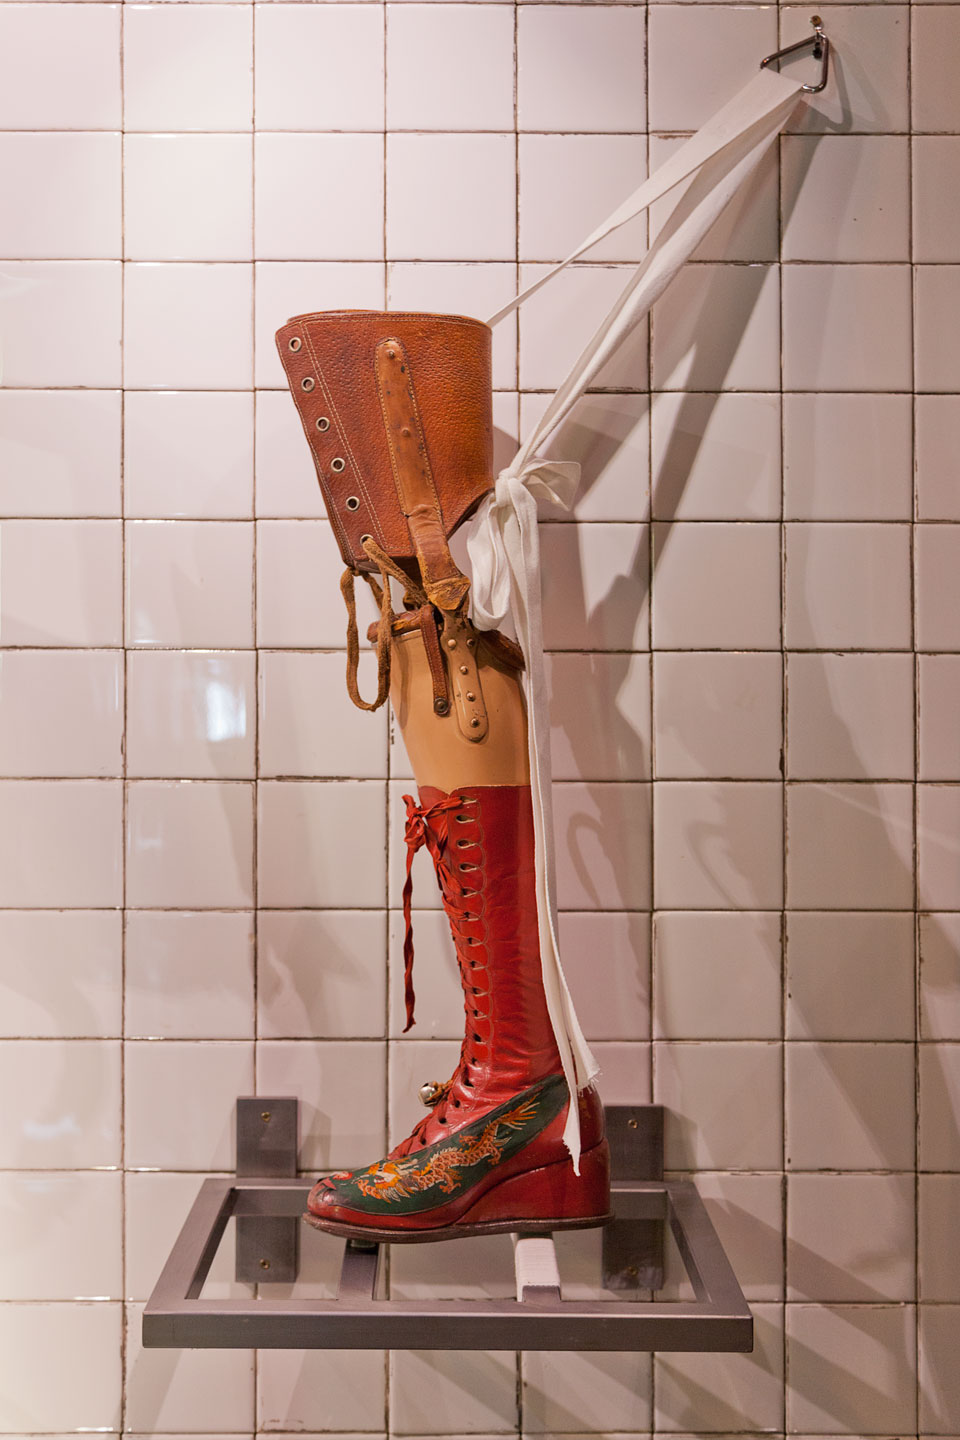 Freda Kahlo's prosthetic leg with Chinese boot